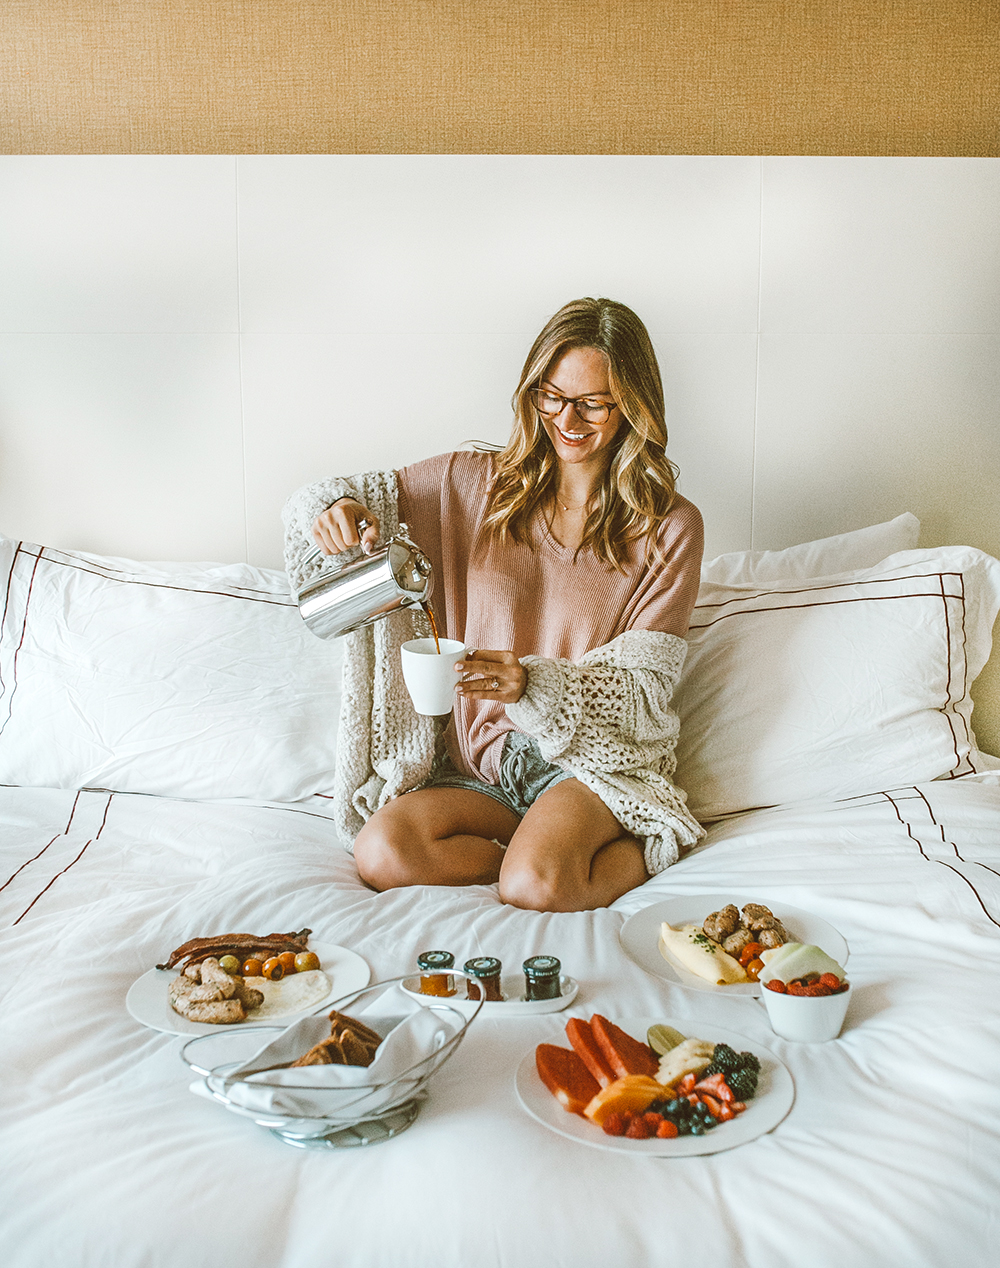 livvyland-blog-olivia-watson-austin-texas-lifestyle-blogger-fairmont-hotel-atx-downtown-room-service-breakfast-in-bed-2